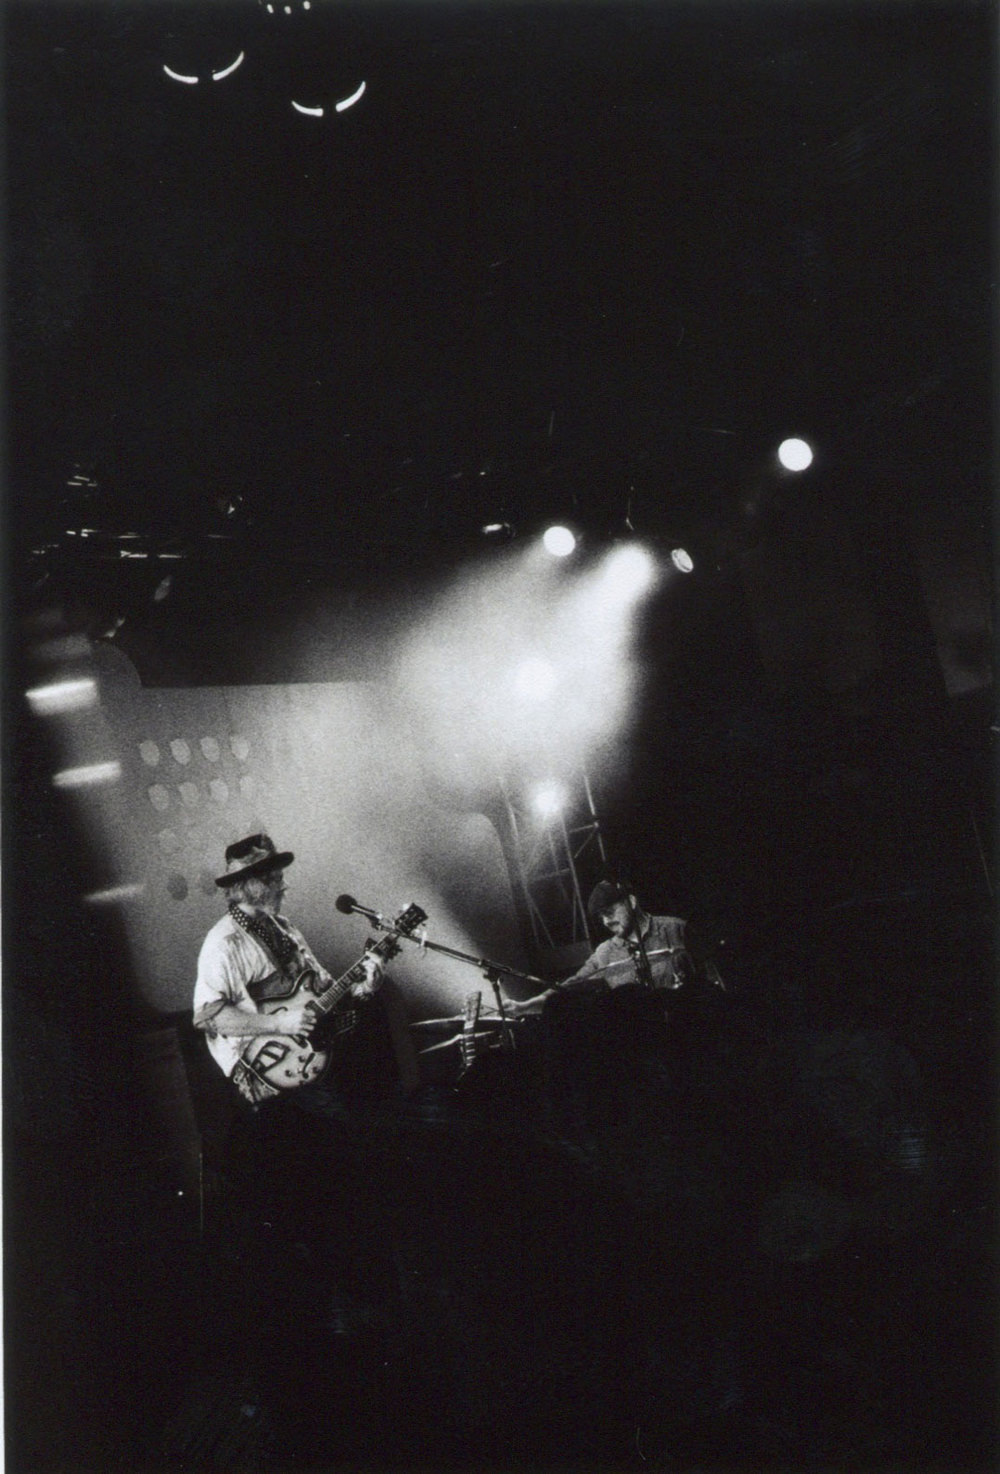 Japan_35mm_DonnyShibuyaShow_16.jpg